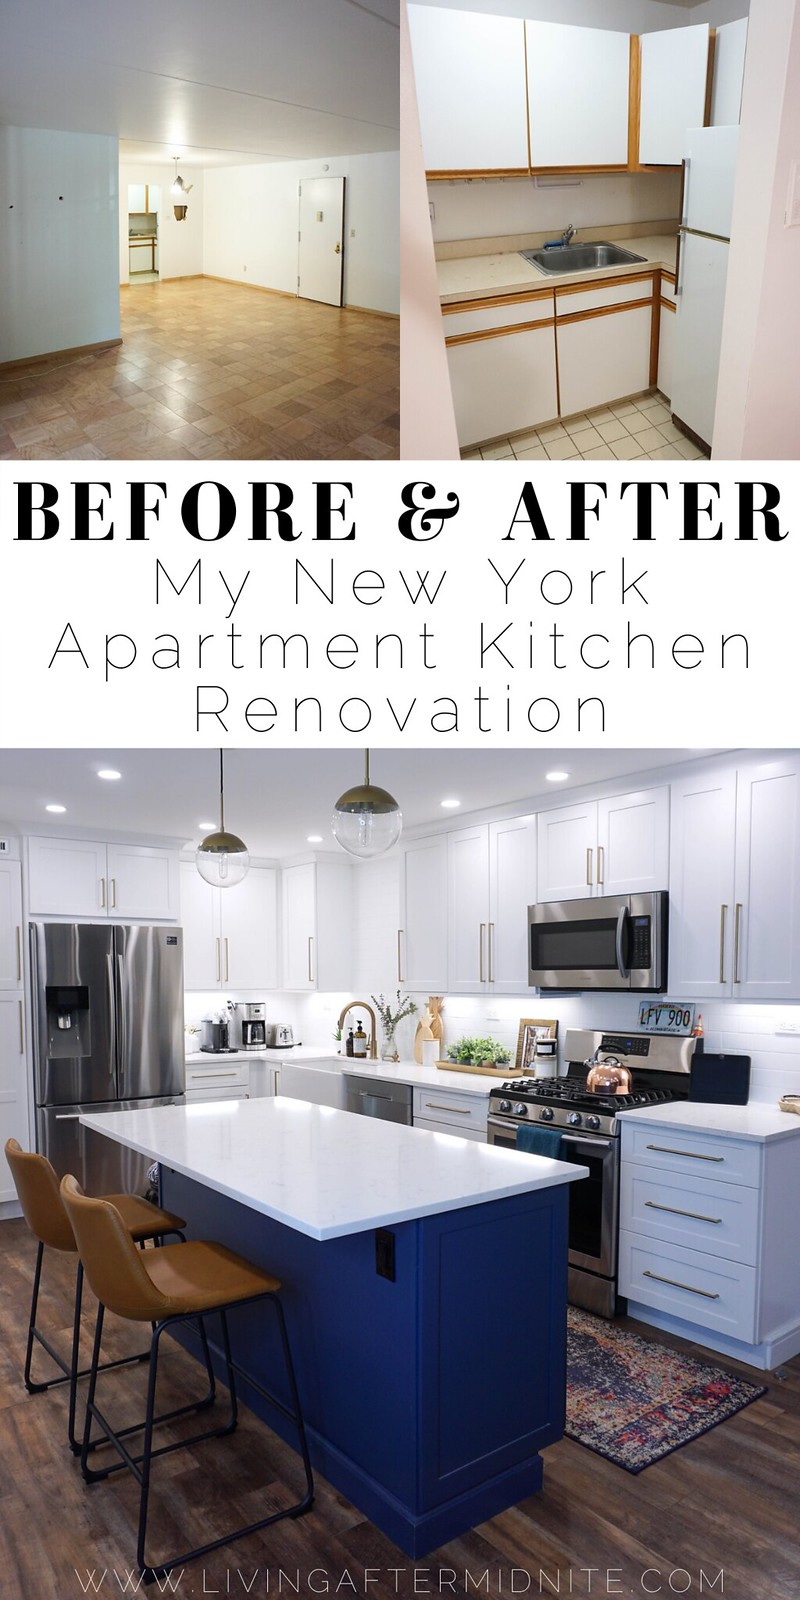 Before & After: My New York Apartment Kitchen Renovation | Living After Midnite Jackie Giardina